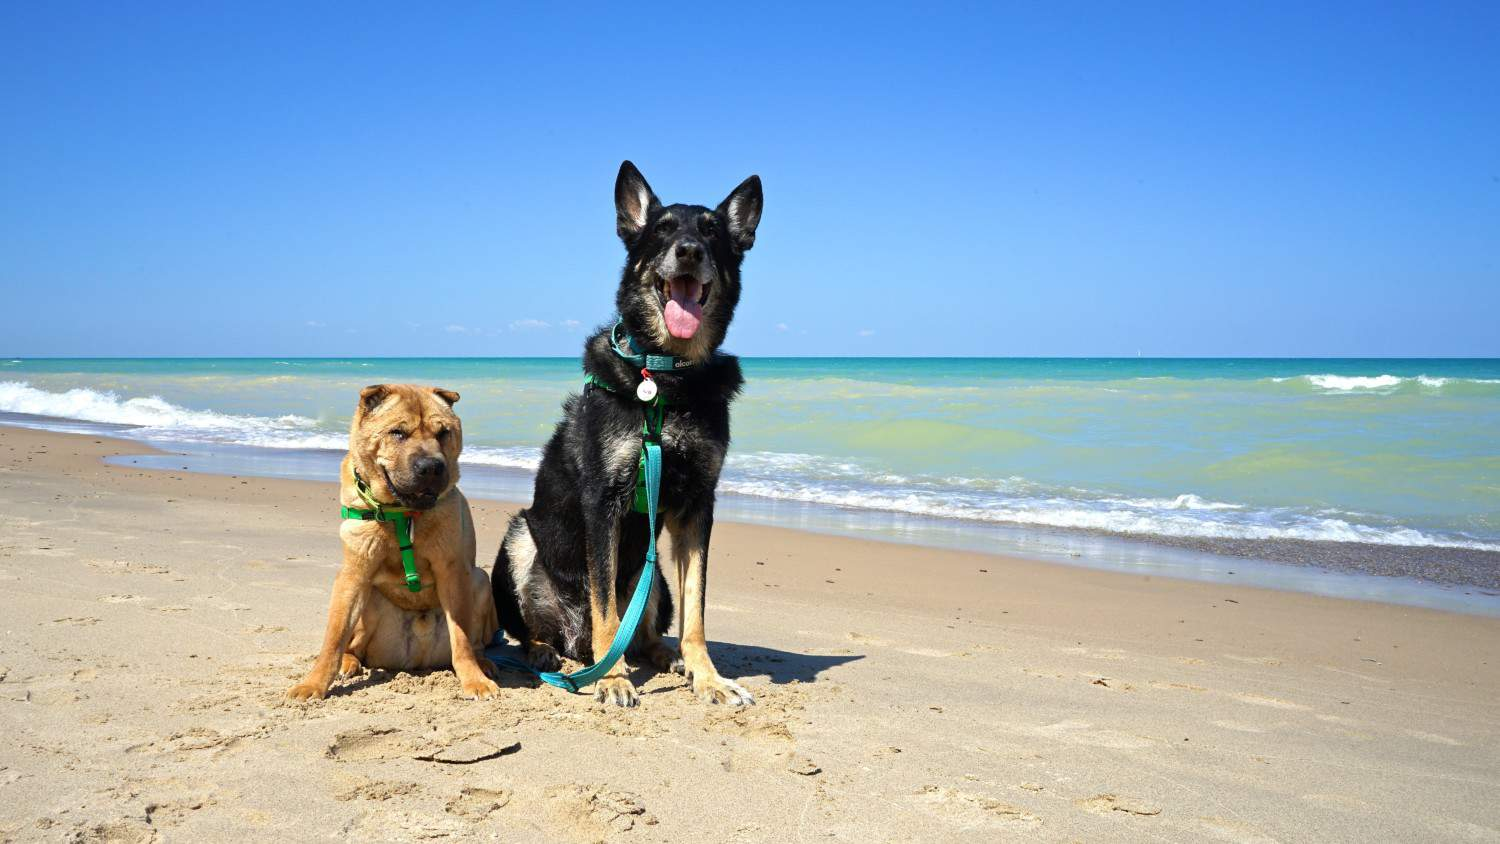 Pet Friendly National Park: Indiana Dunes